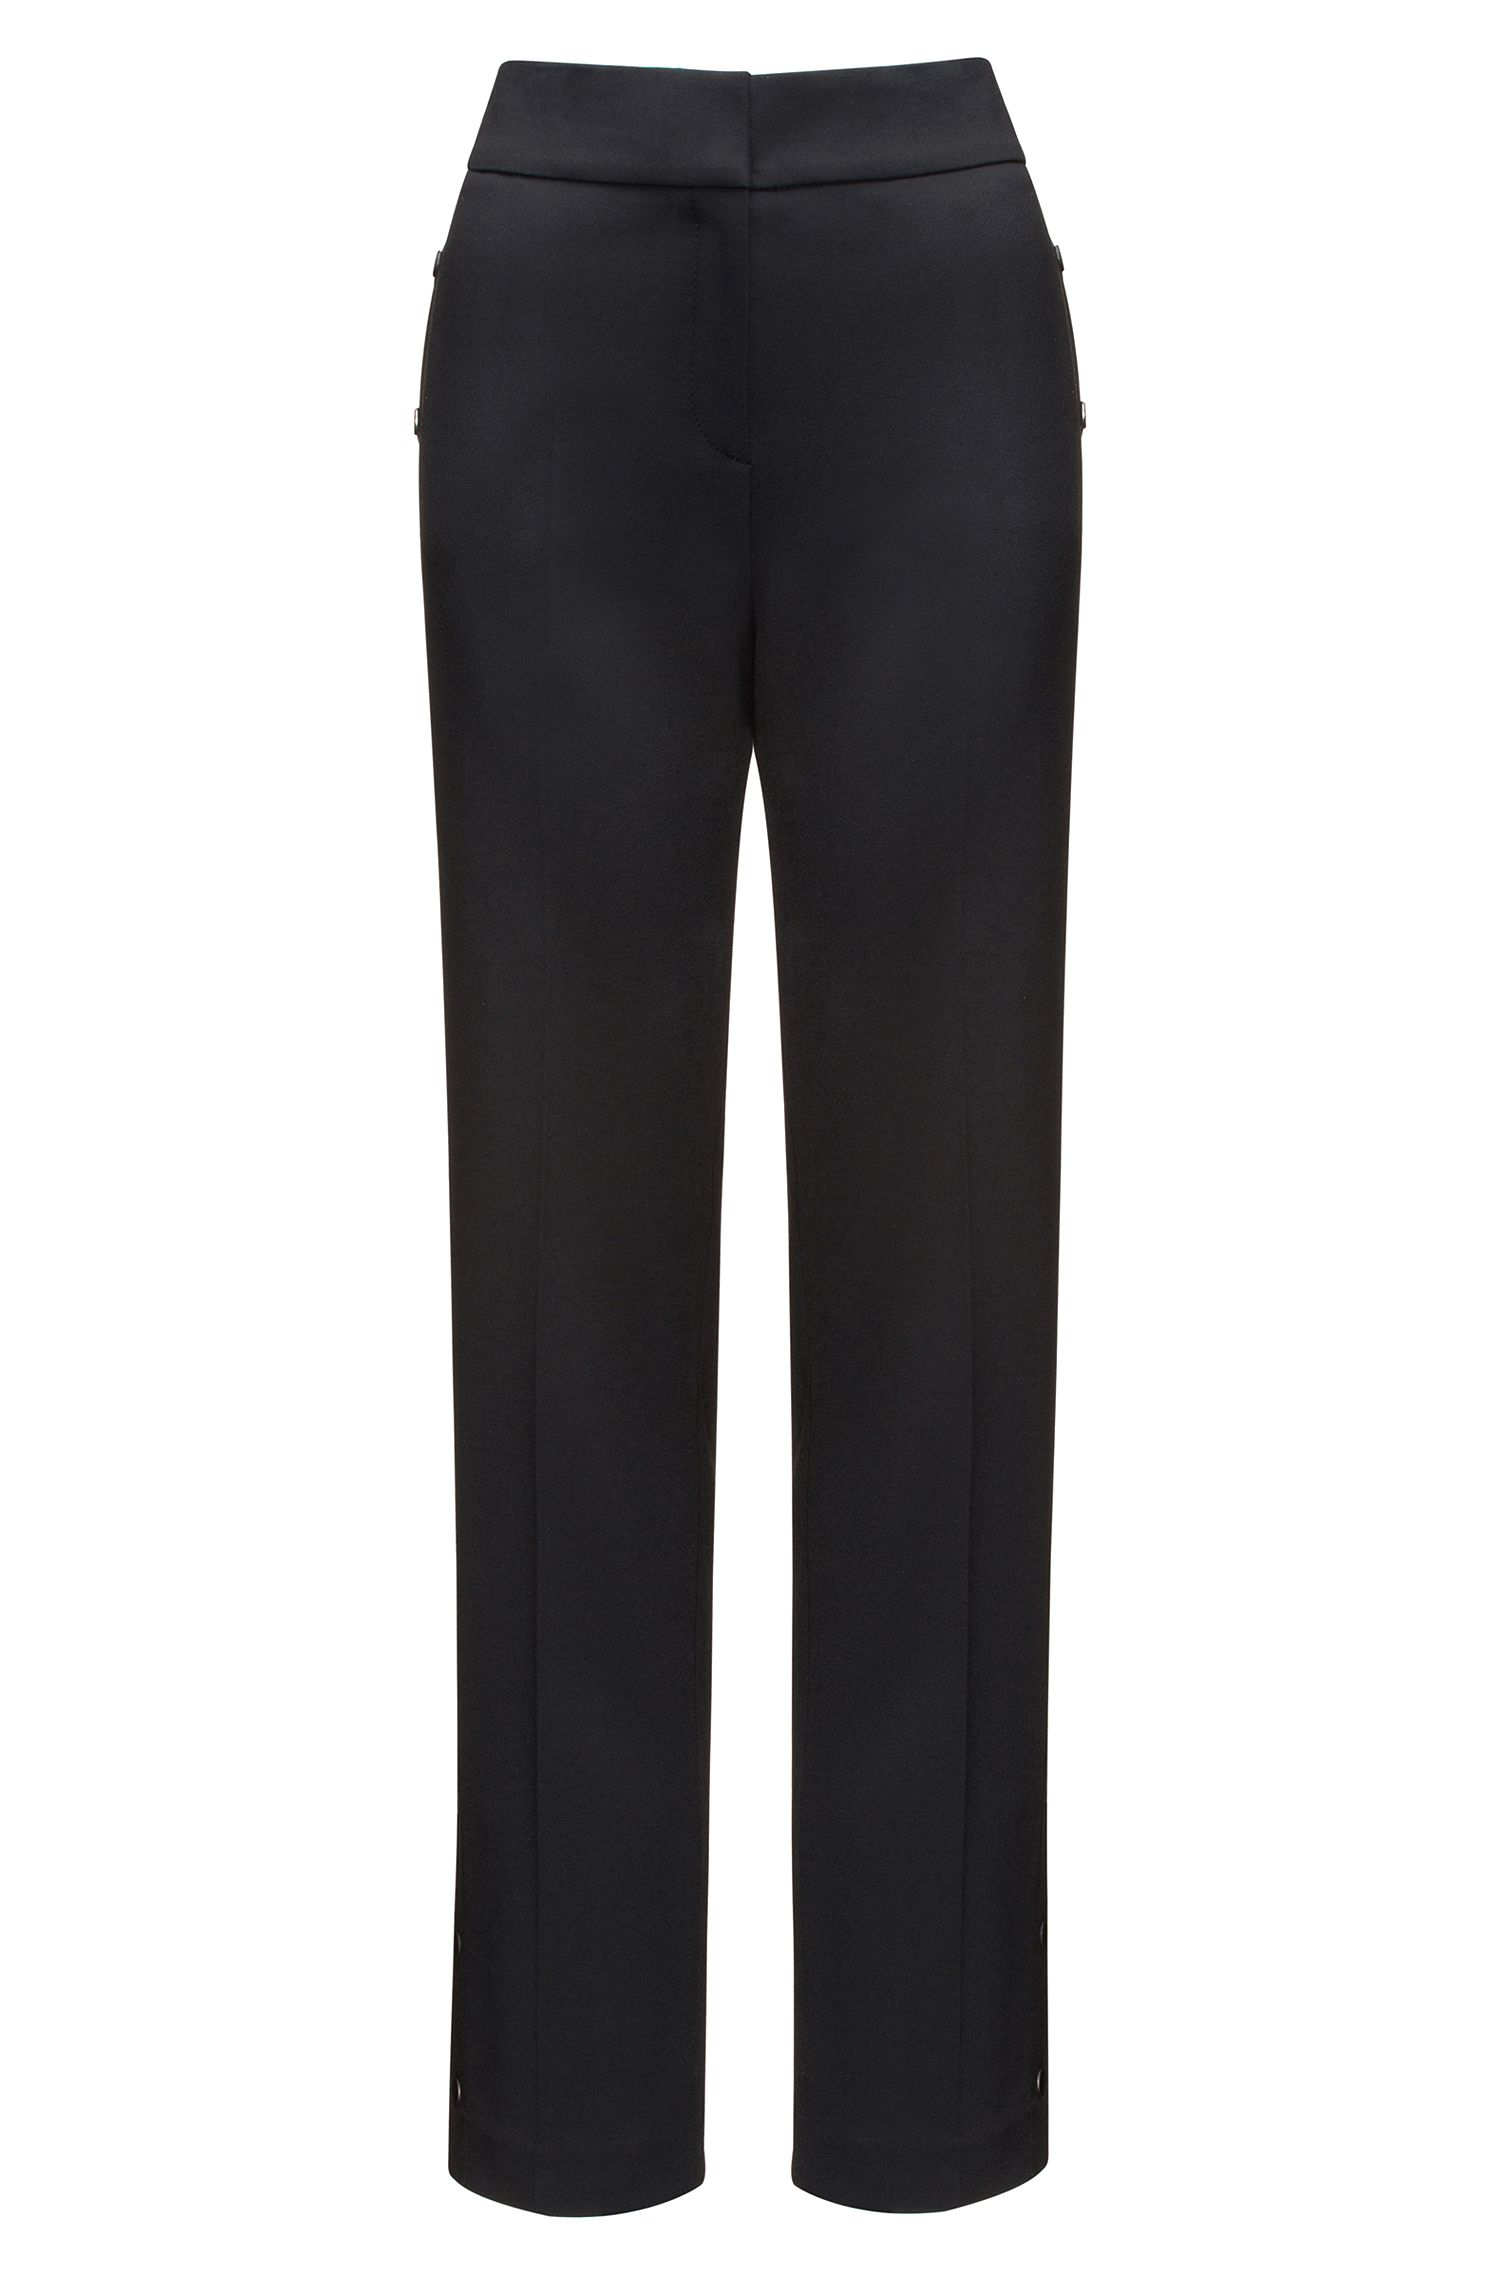 Relaxed-fit trousers with press-stud side seams